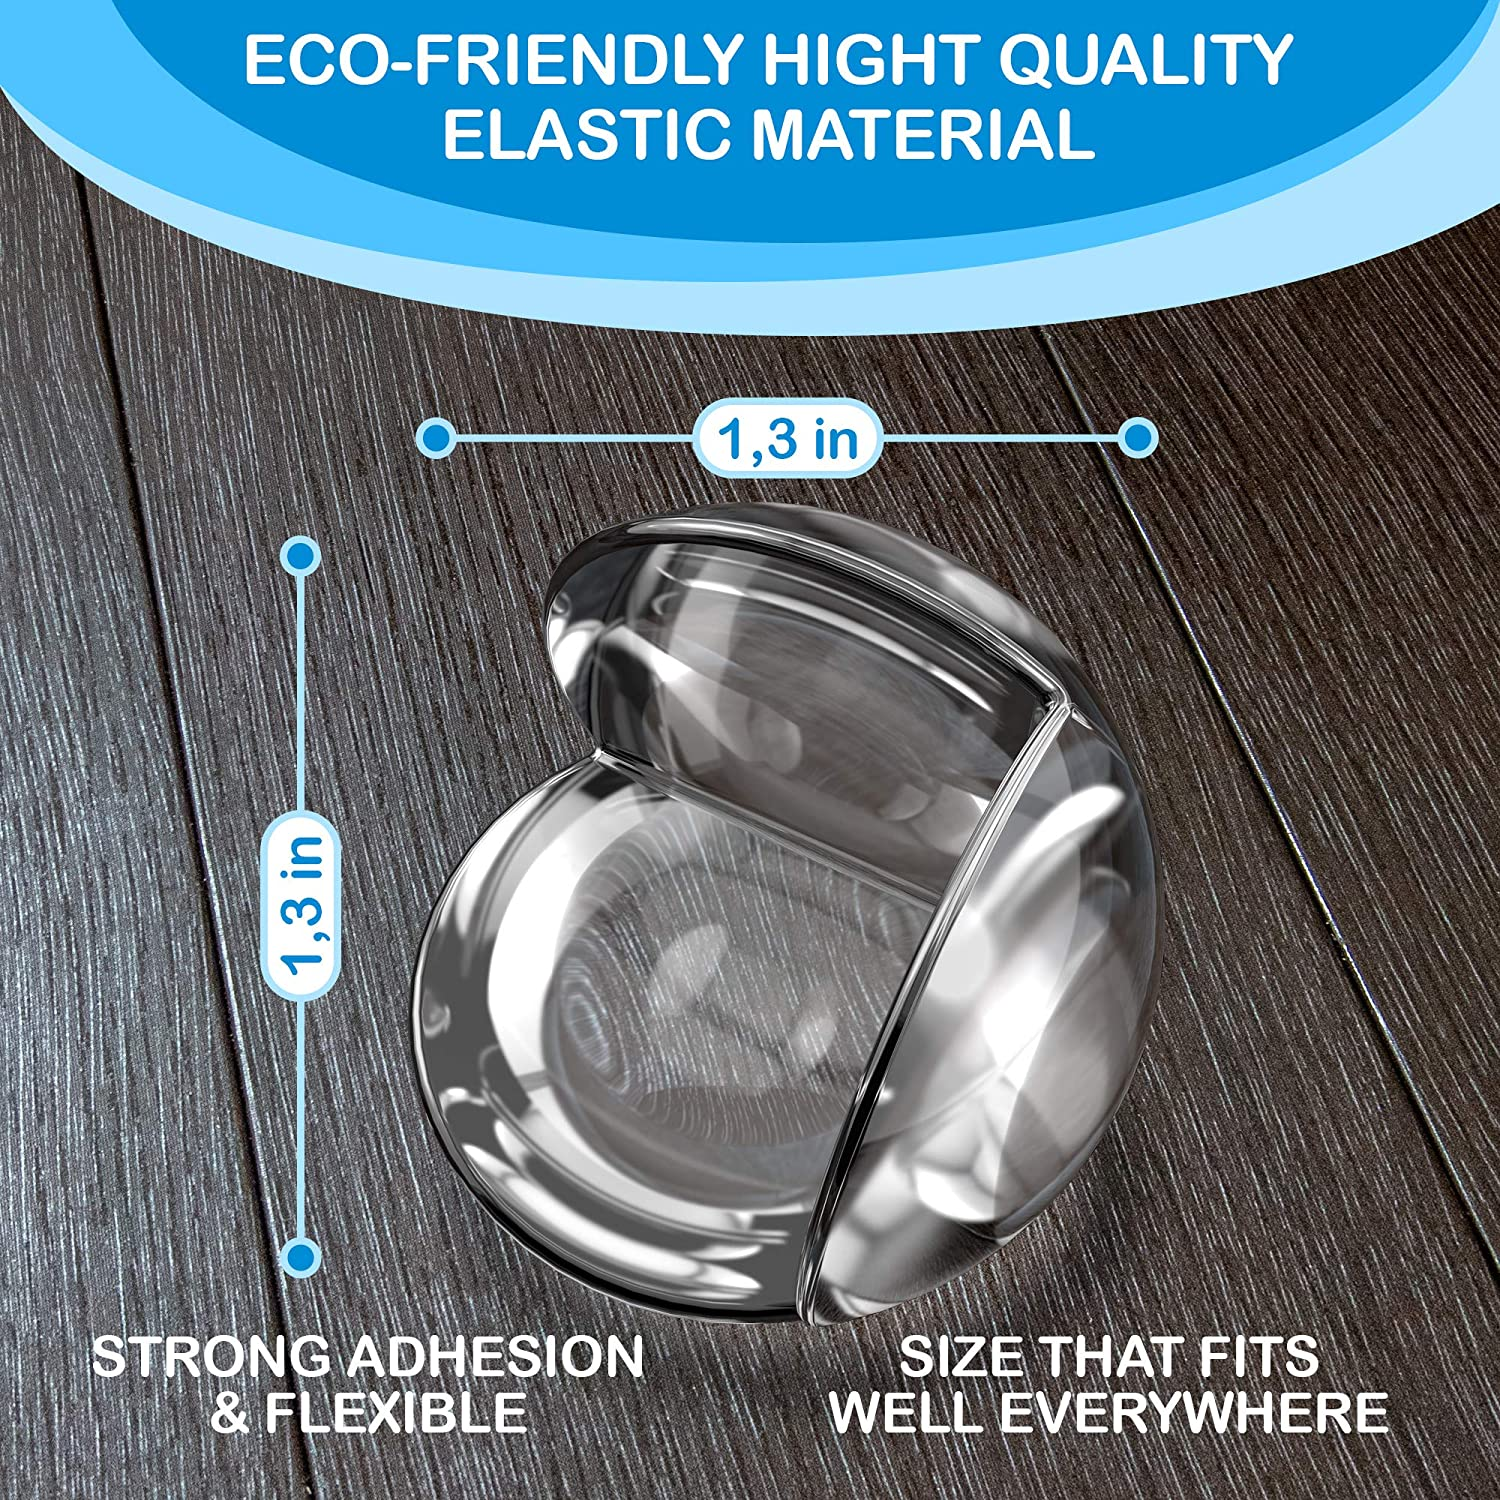 Glass Child Safety Sharp Corner Protector Kids Clear Corner Guards 20 Pack Baby Safety Adhesive Edge Bumpers Table Corner Protectors for Baby Proofing Furniture Child Proof Corner Guard